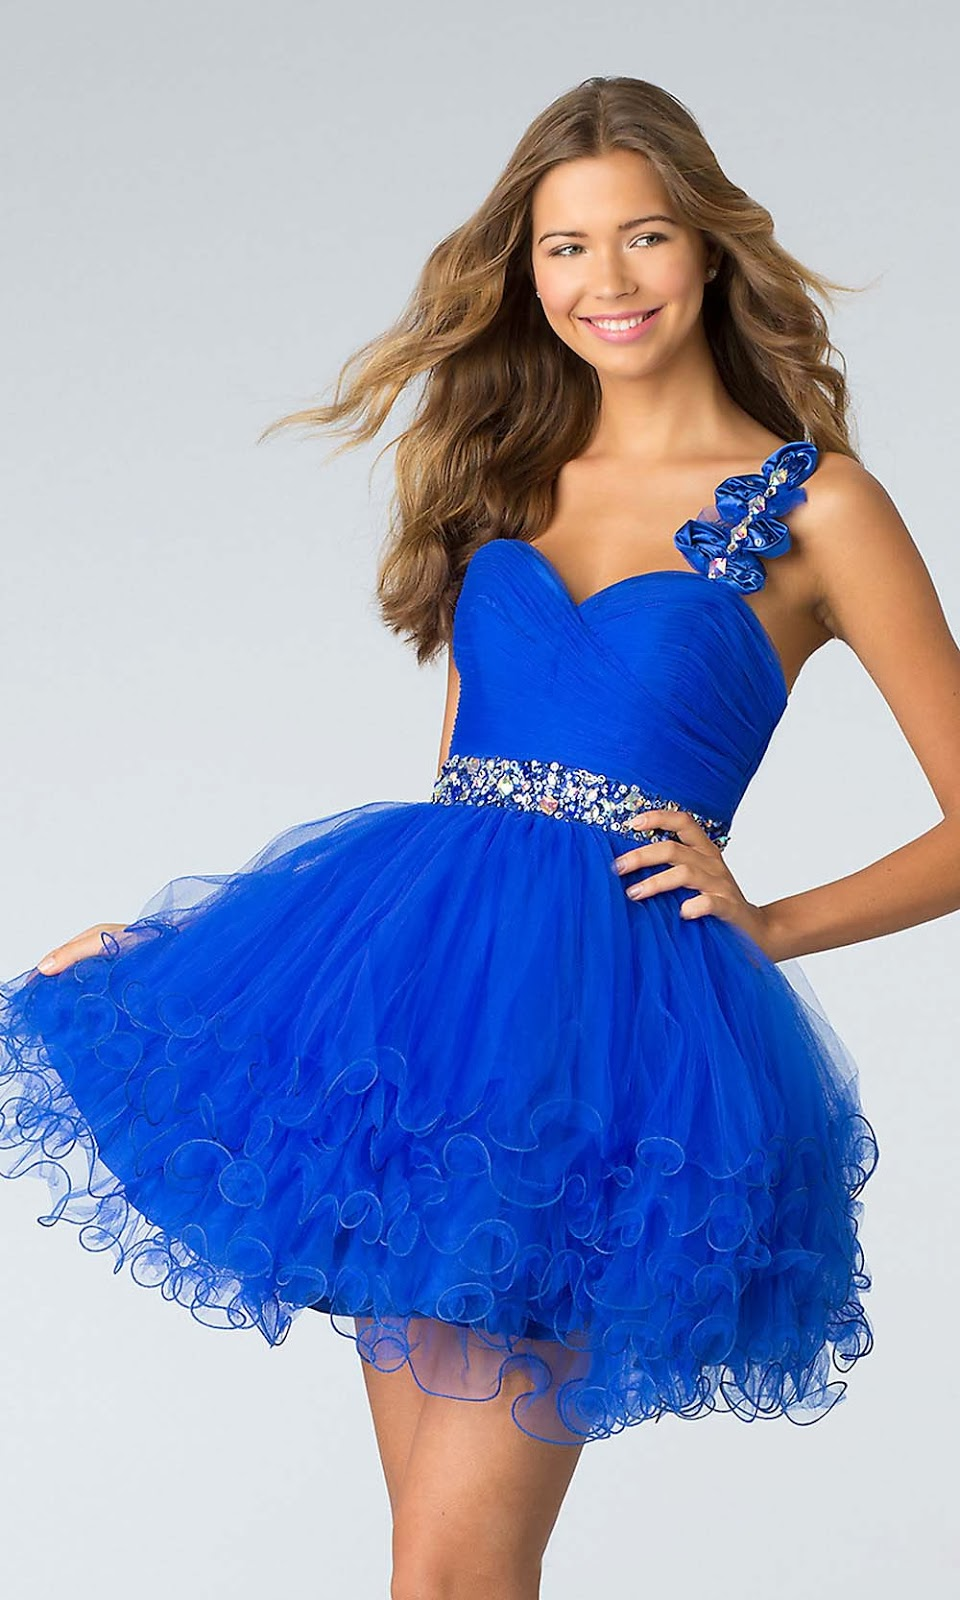 Short Royal Blue Prom Dresses - Holiday Dresses